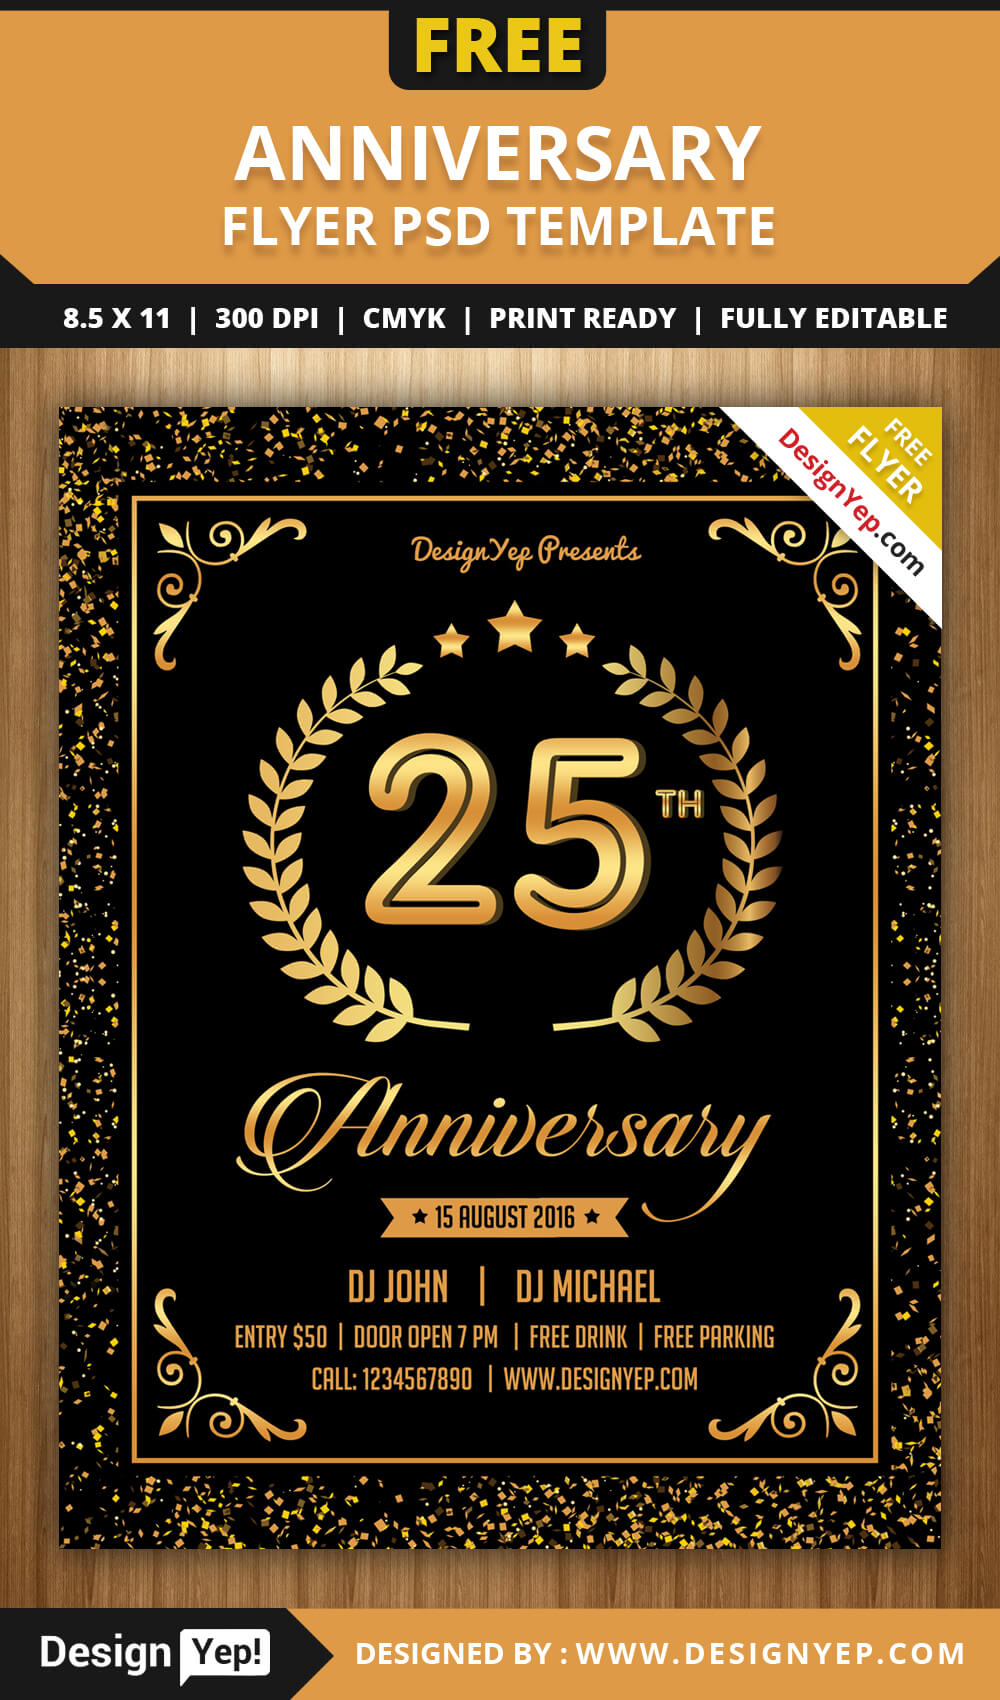 Free Anniversary Party Flyer Psd Template - Designyep Throughout Anniversary Flyer Template Free